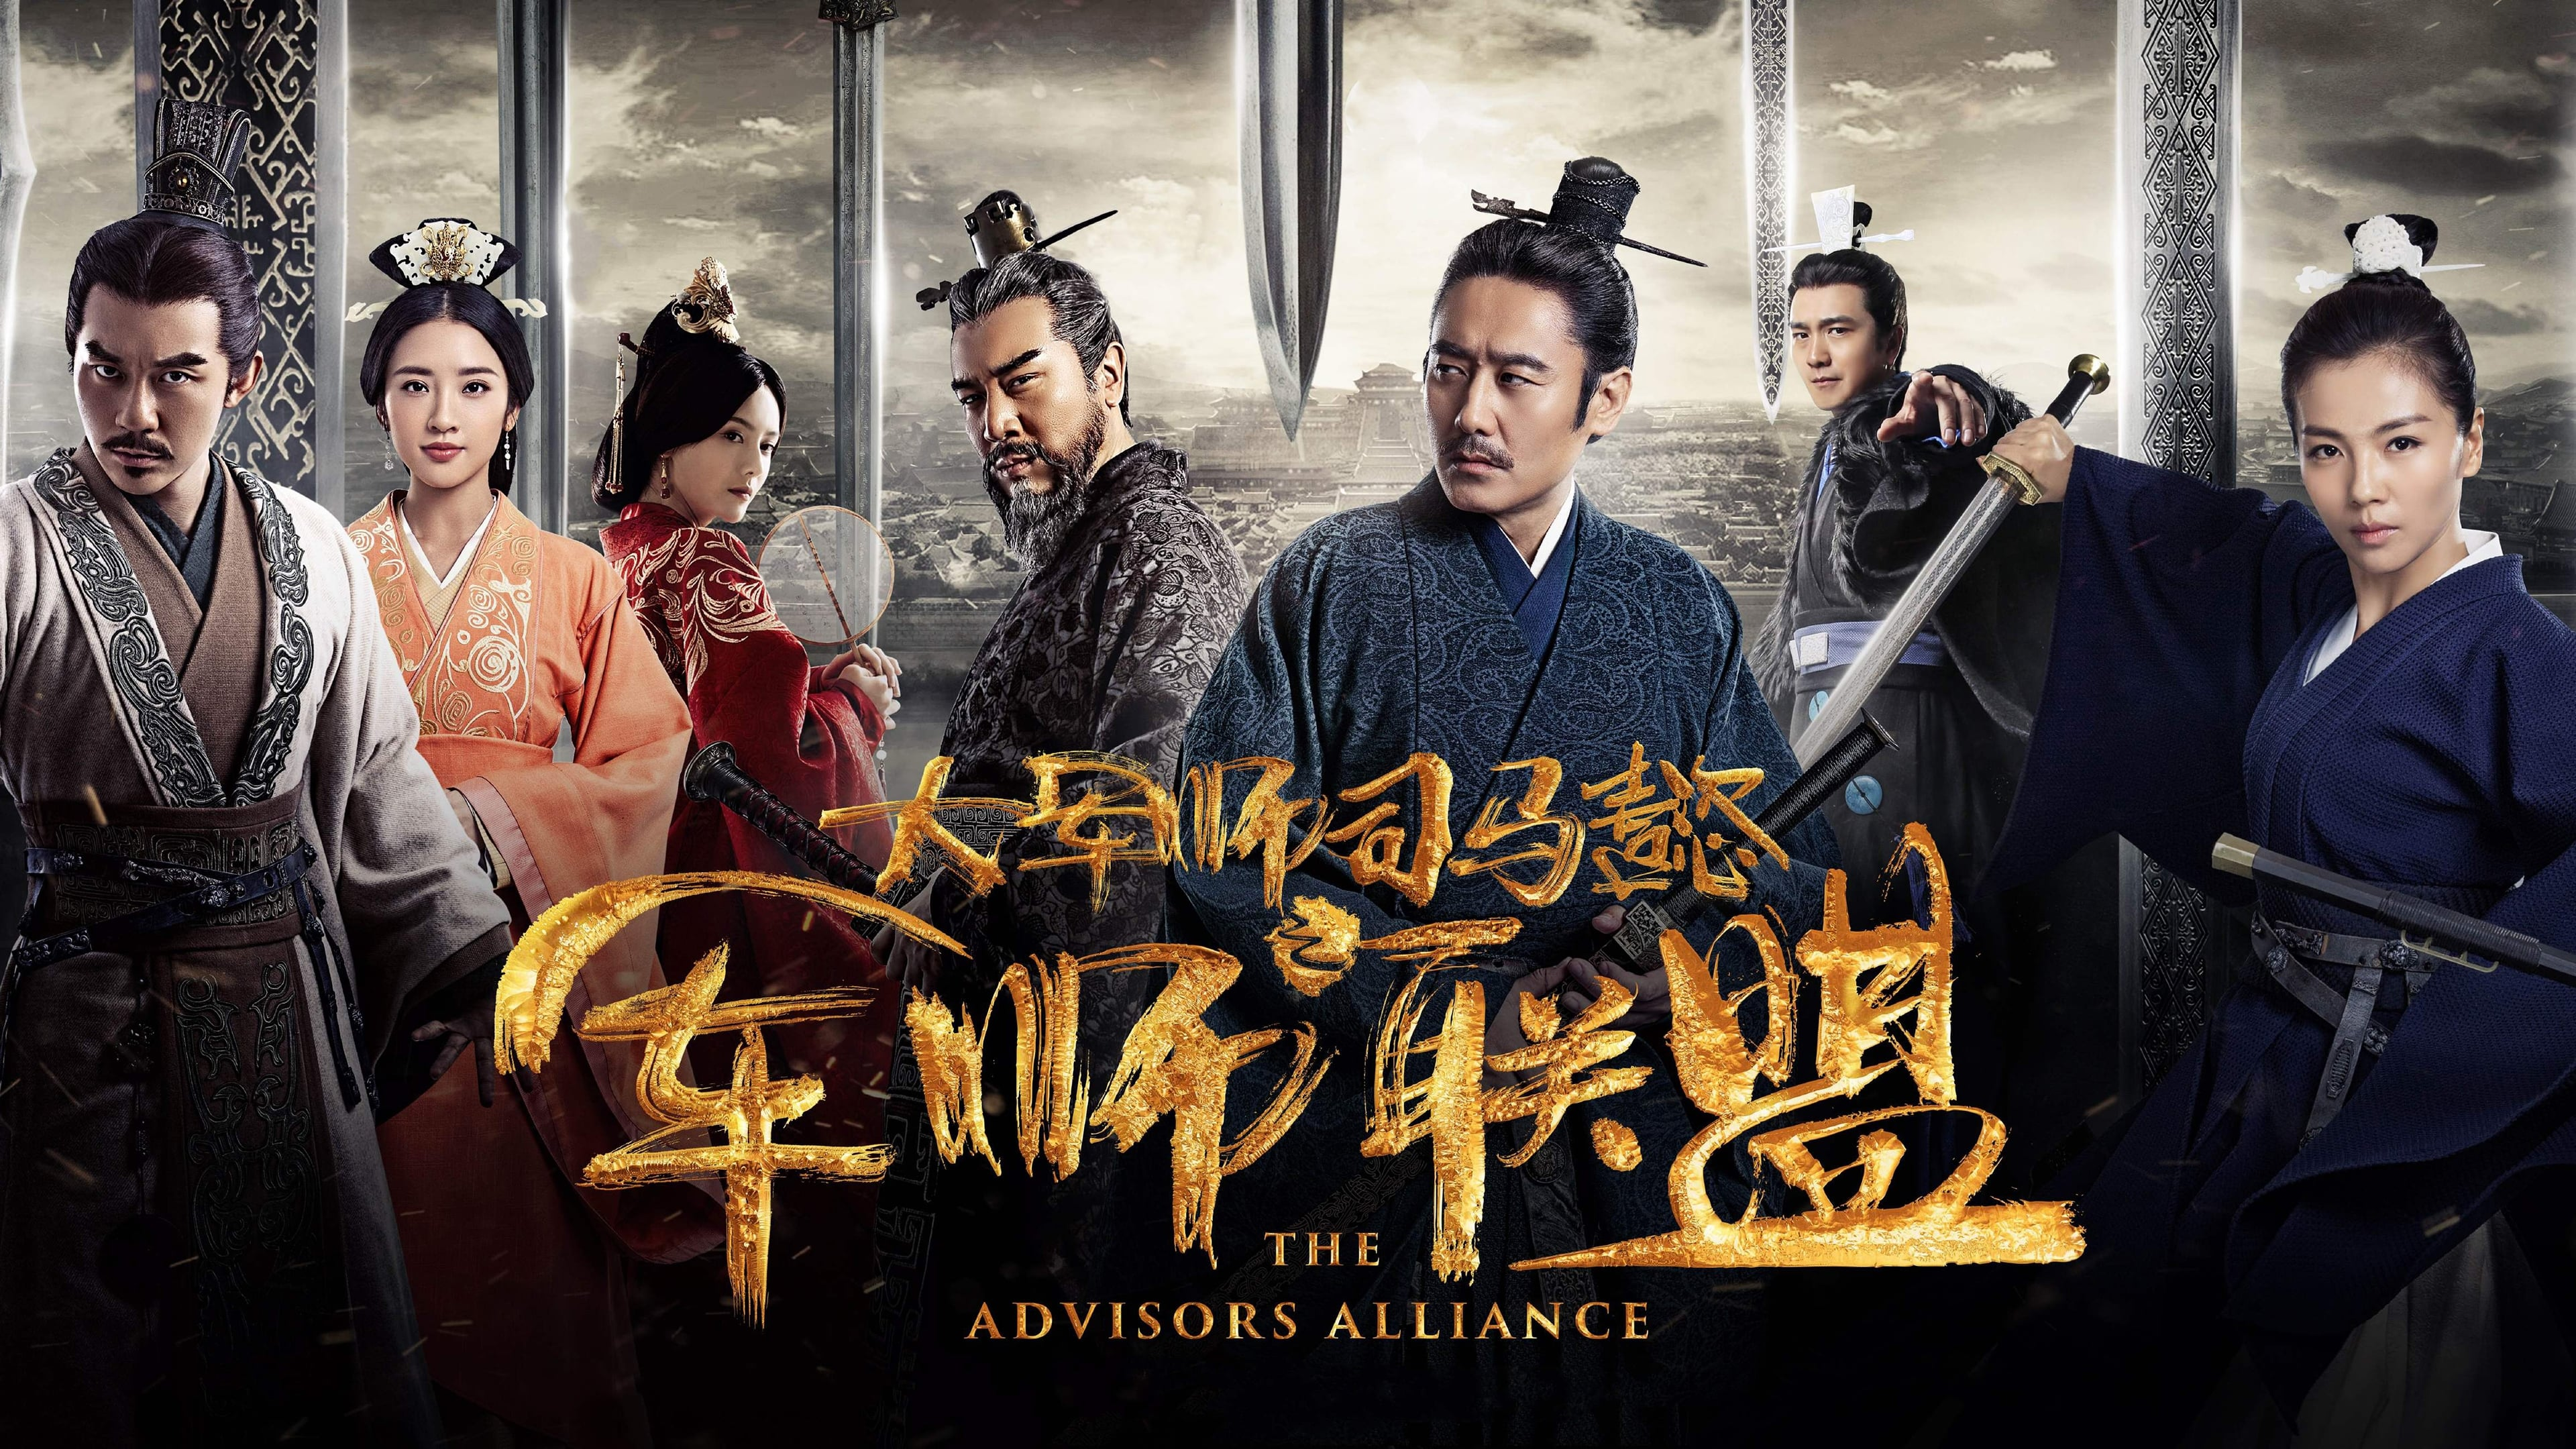 The Advisors Alliance